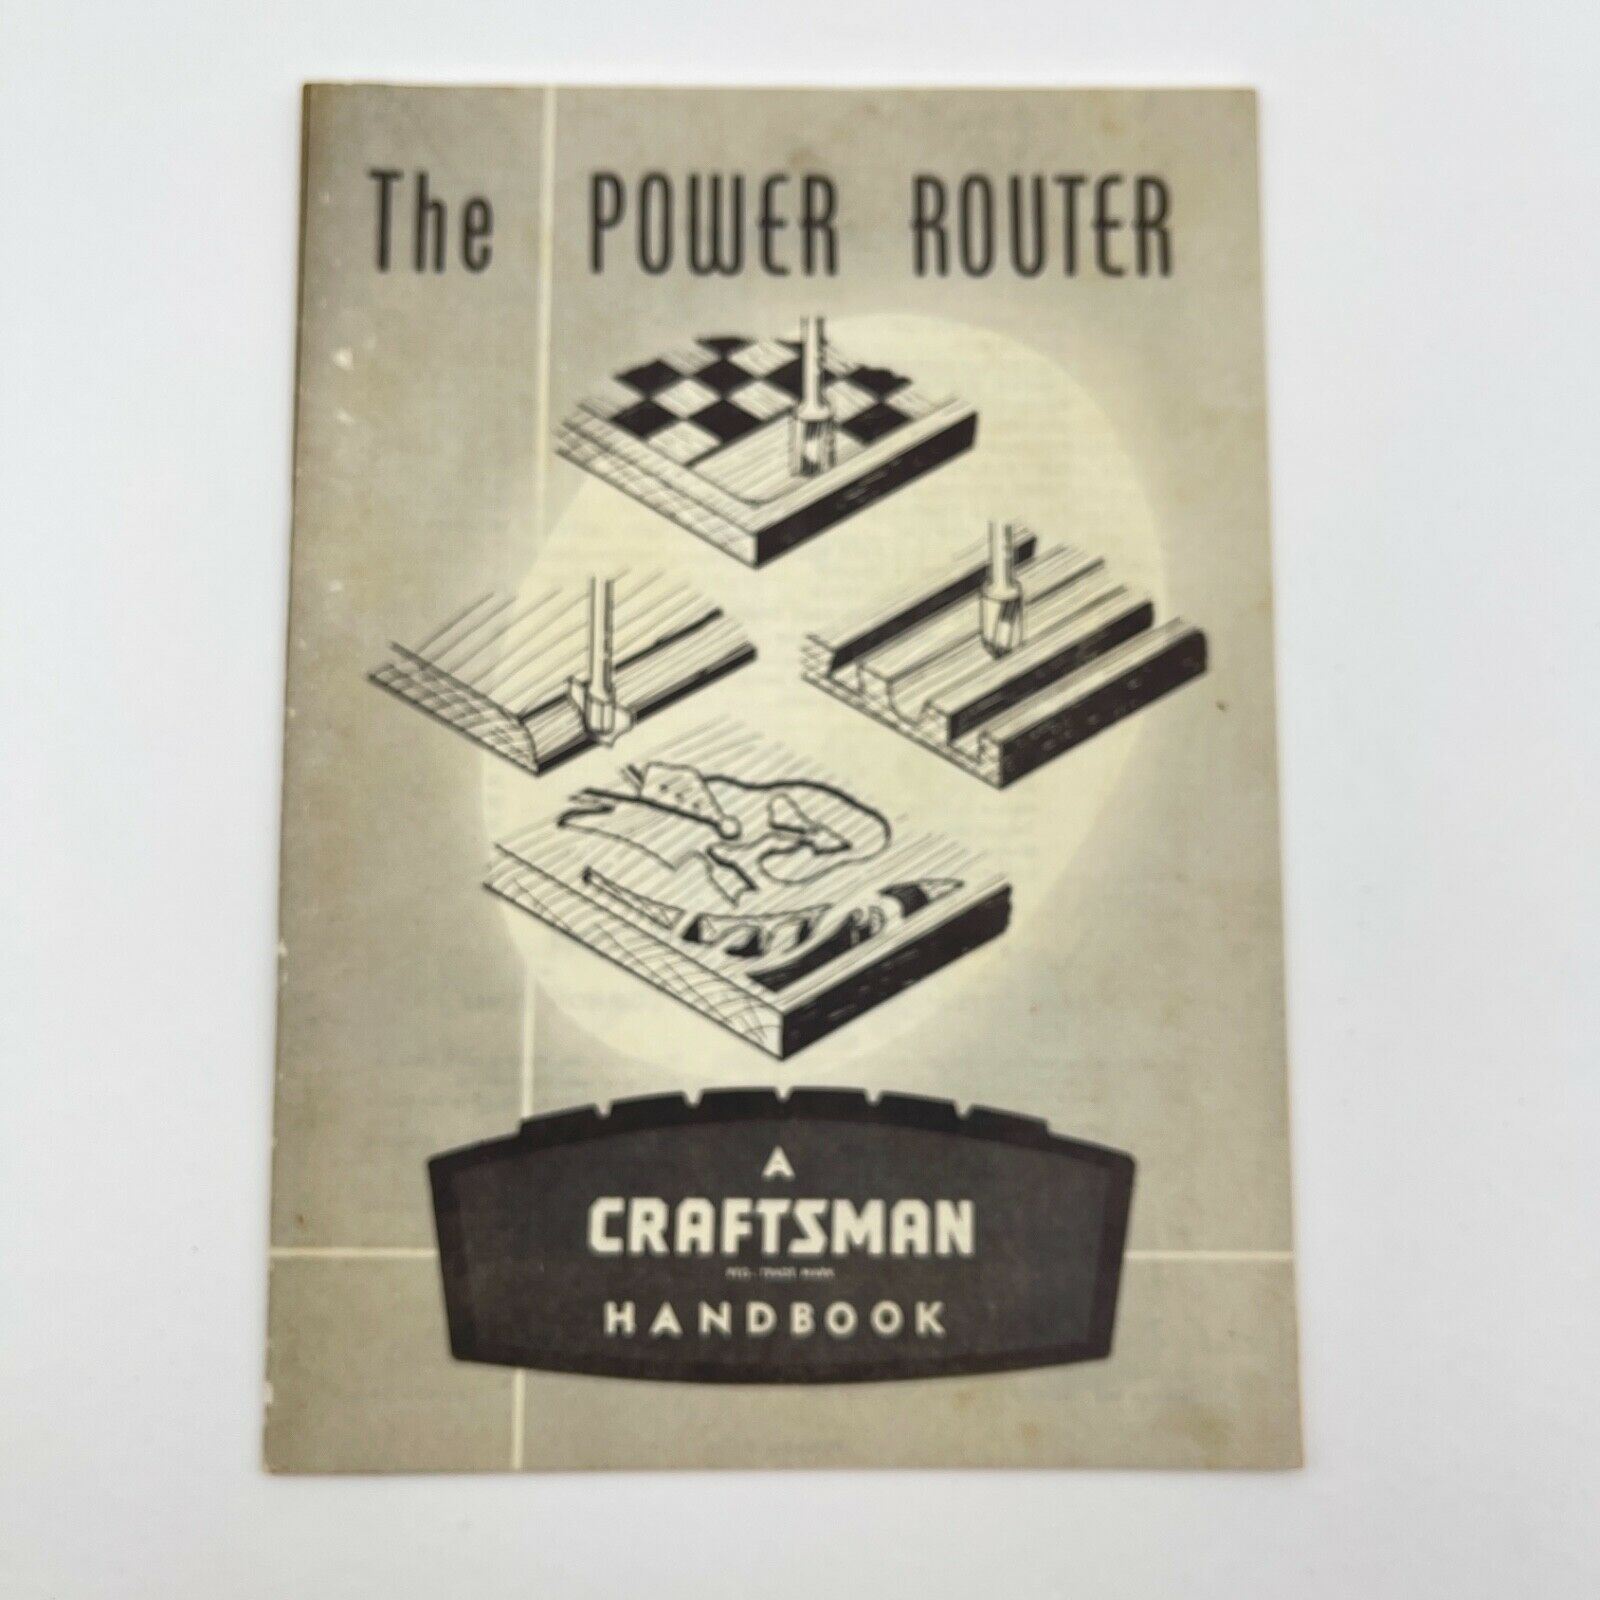 1963 The Power Router Craftsman Power Tool Handbook by Sears